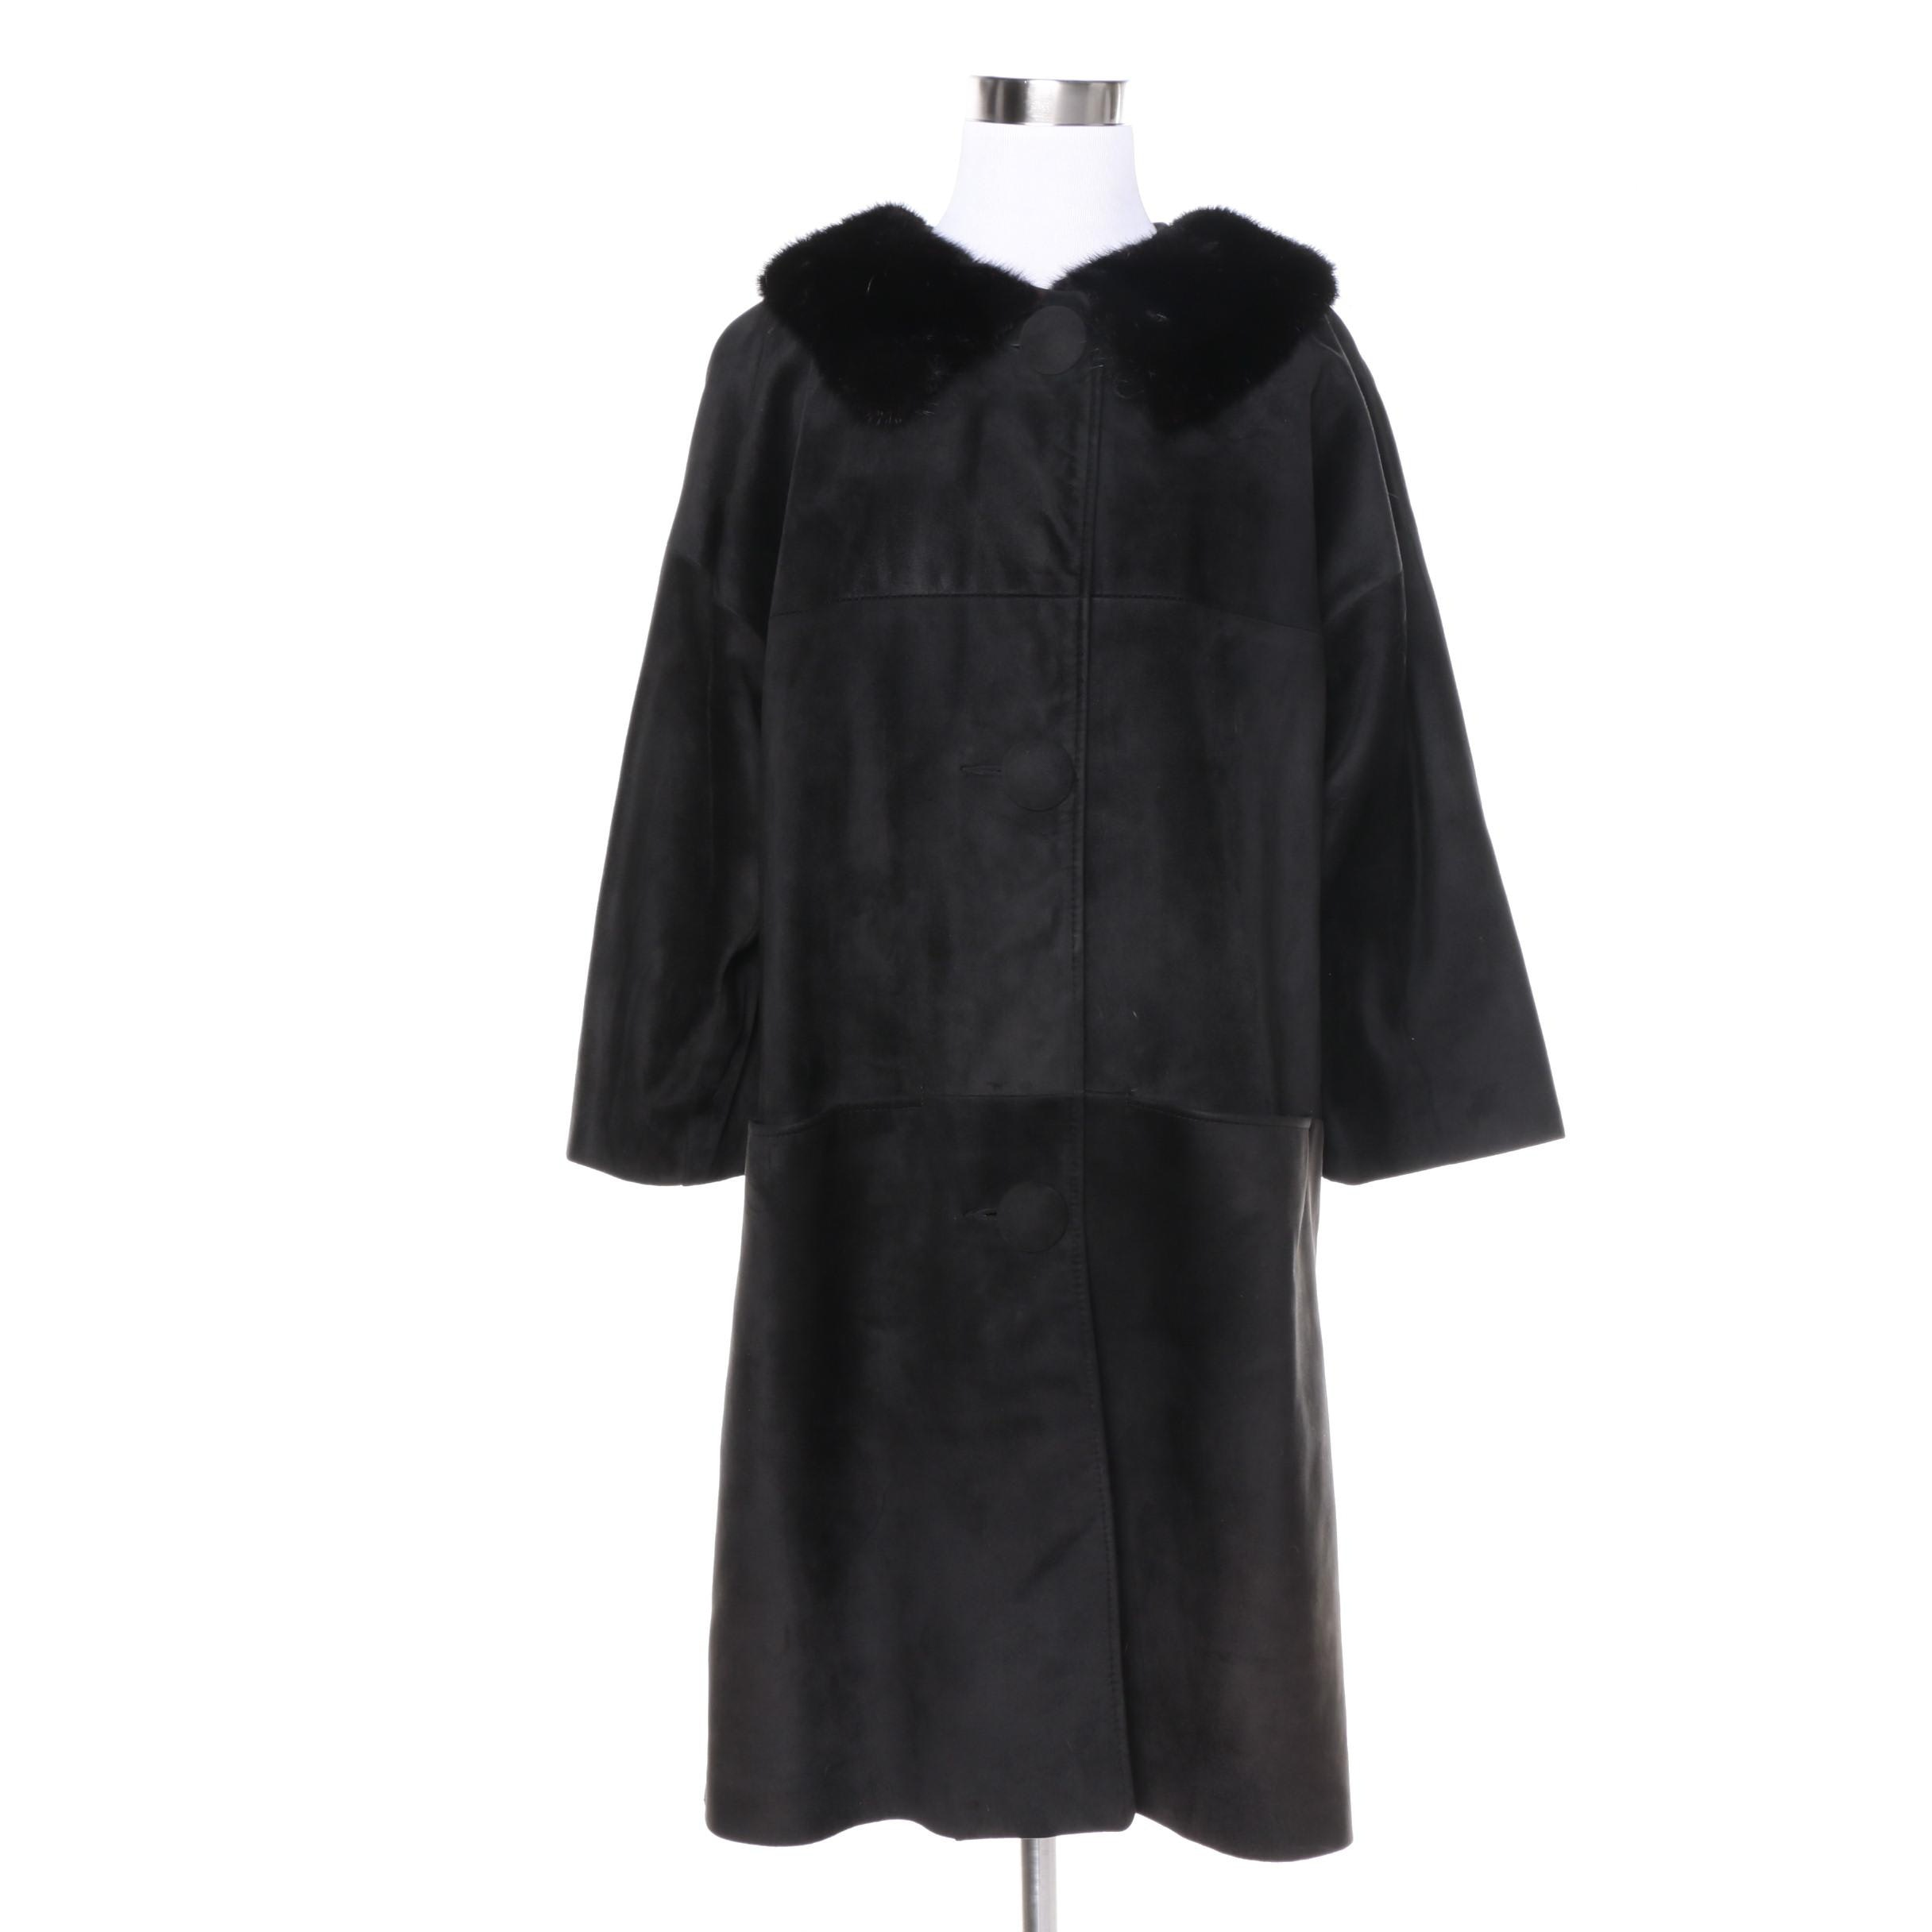 Women's Vintage Black Suede Coat with Black Mink Fur Collar